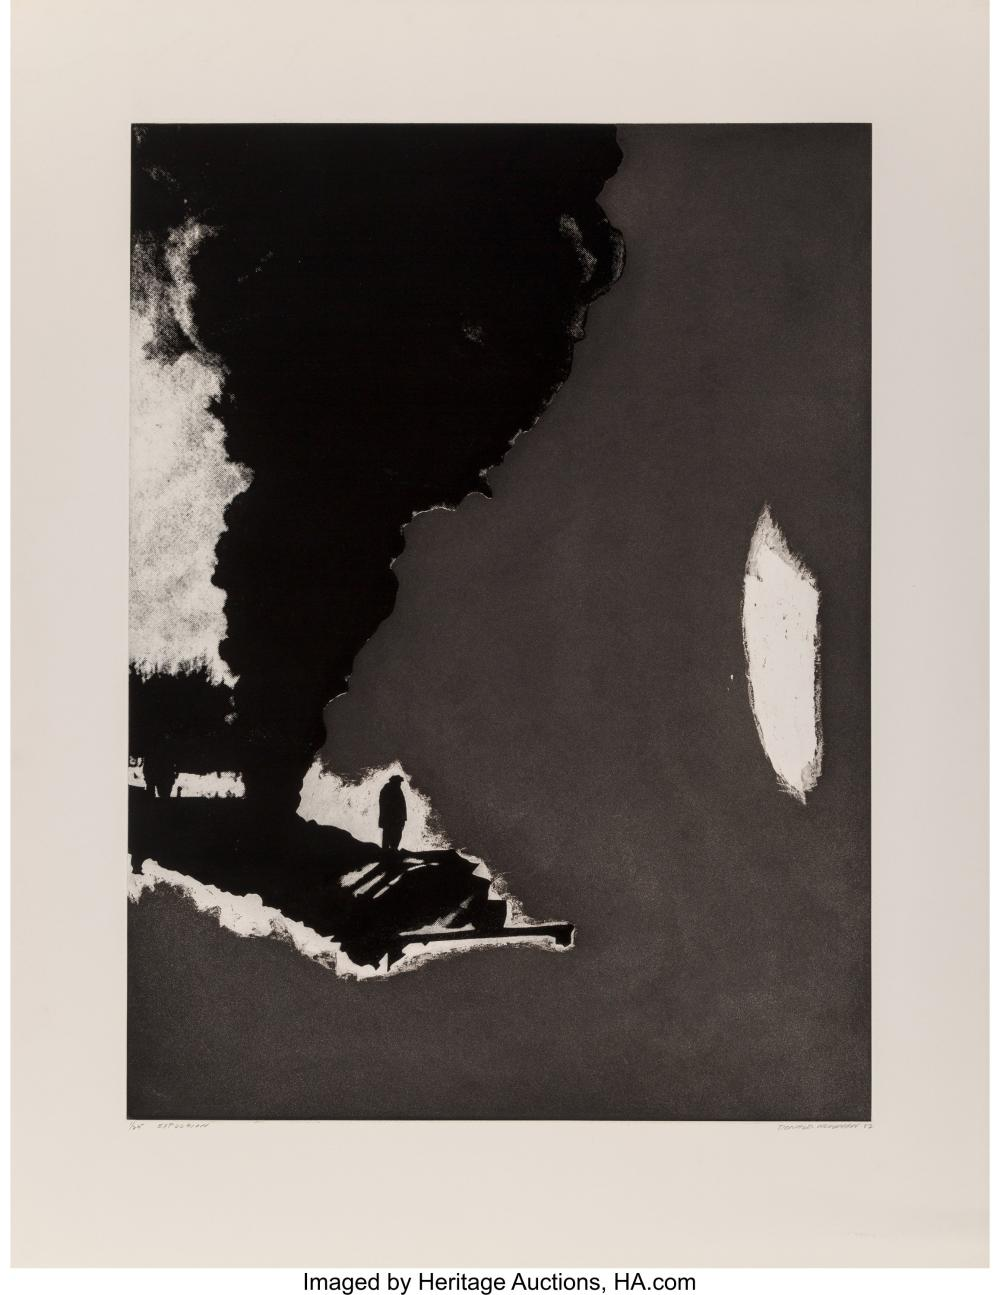 Lot 21333: Donald Newman (20th century) Expulsion, 1982 Etching on paper 37-3/4 x 29-1/2 in